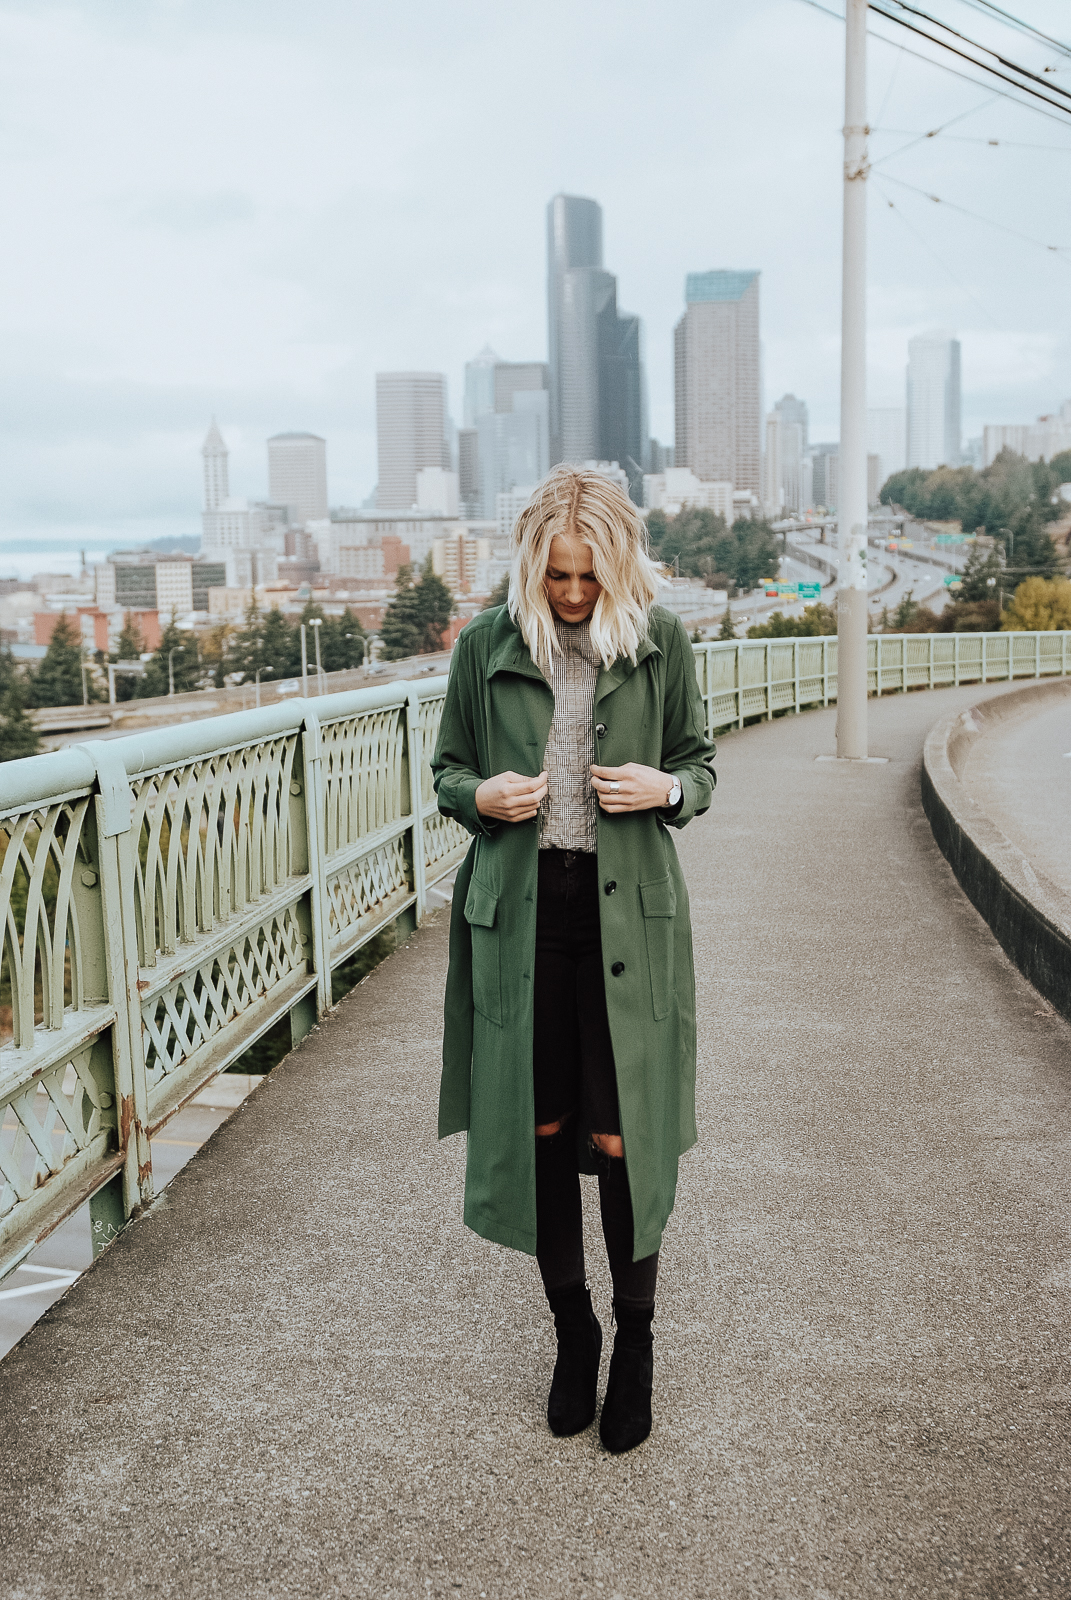 Autumn Sorelle | 3 Reasons to Add a Duster Coat to Your Wardrobe